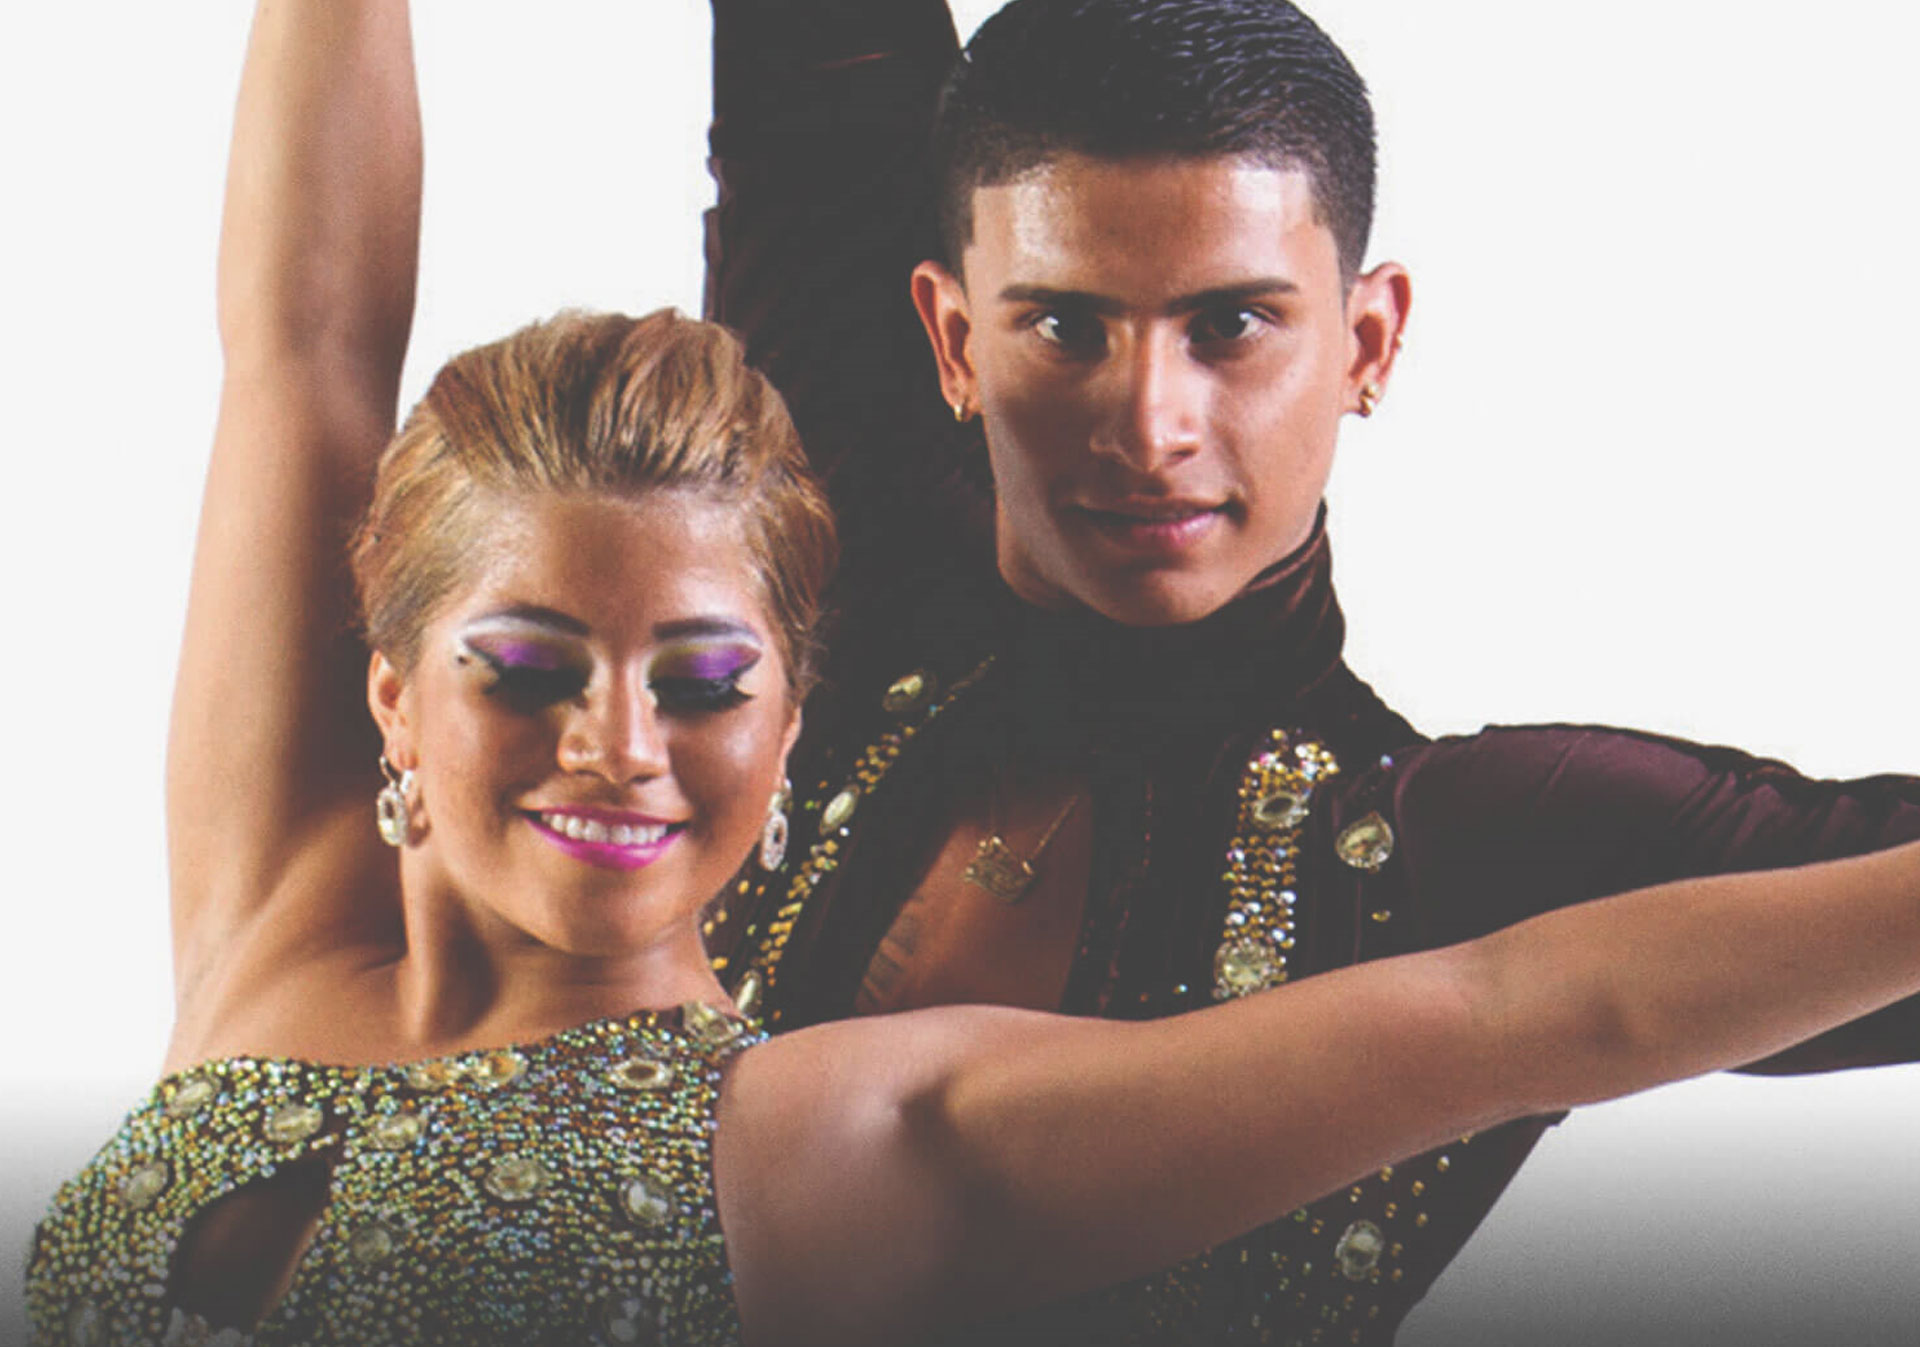 The world's best dancers come to Calgary for the Calgary International Salsa Congress.